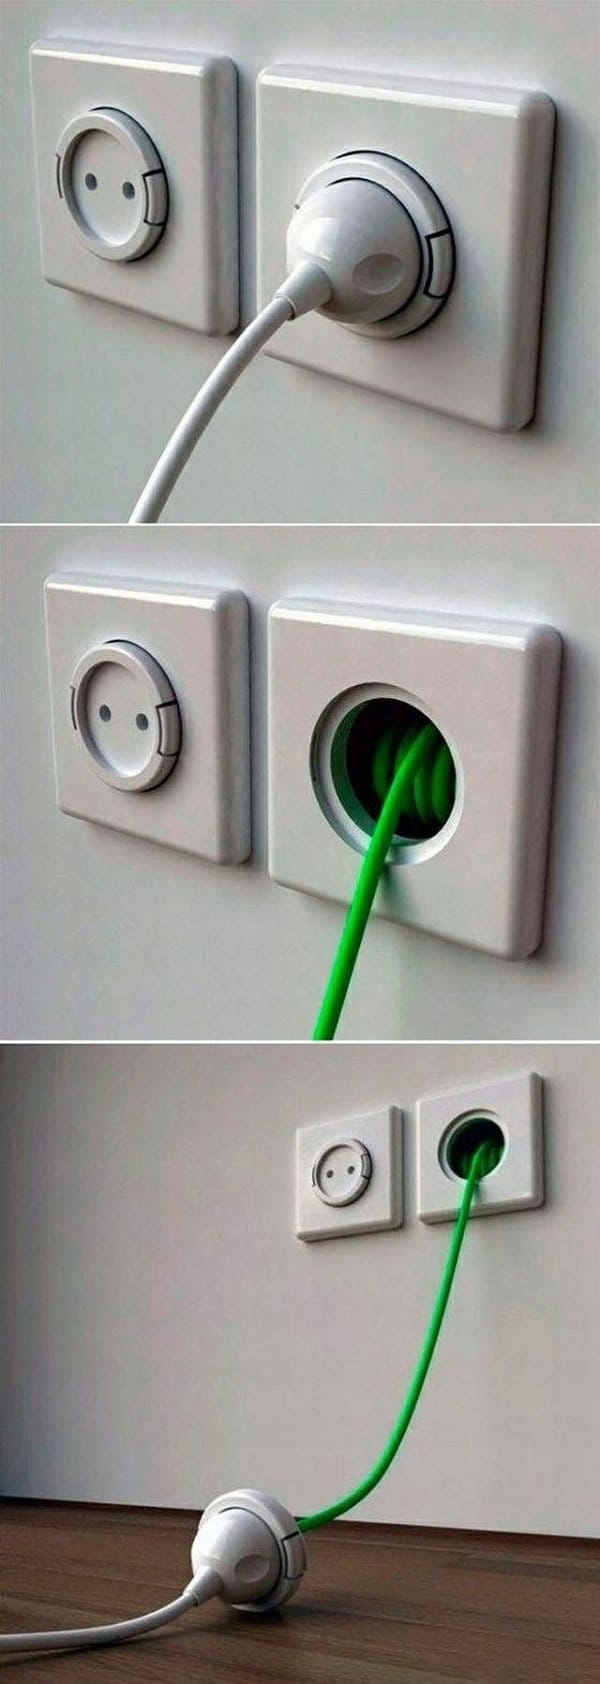 genius idea for socket extension cord